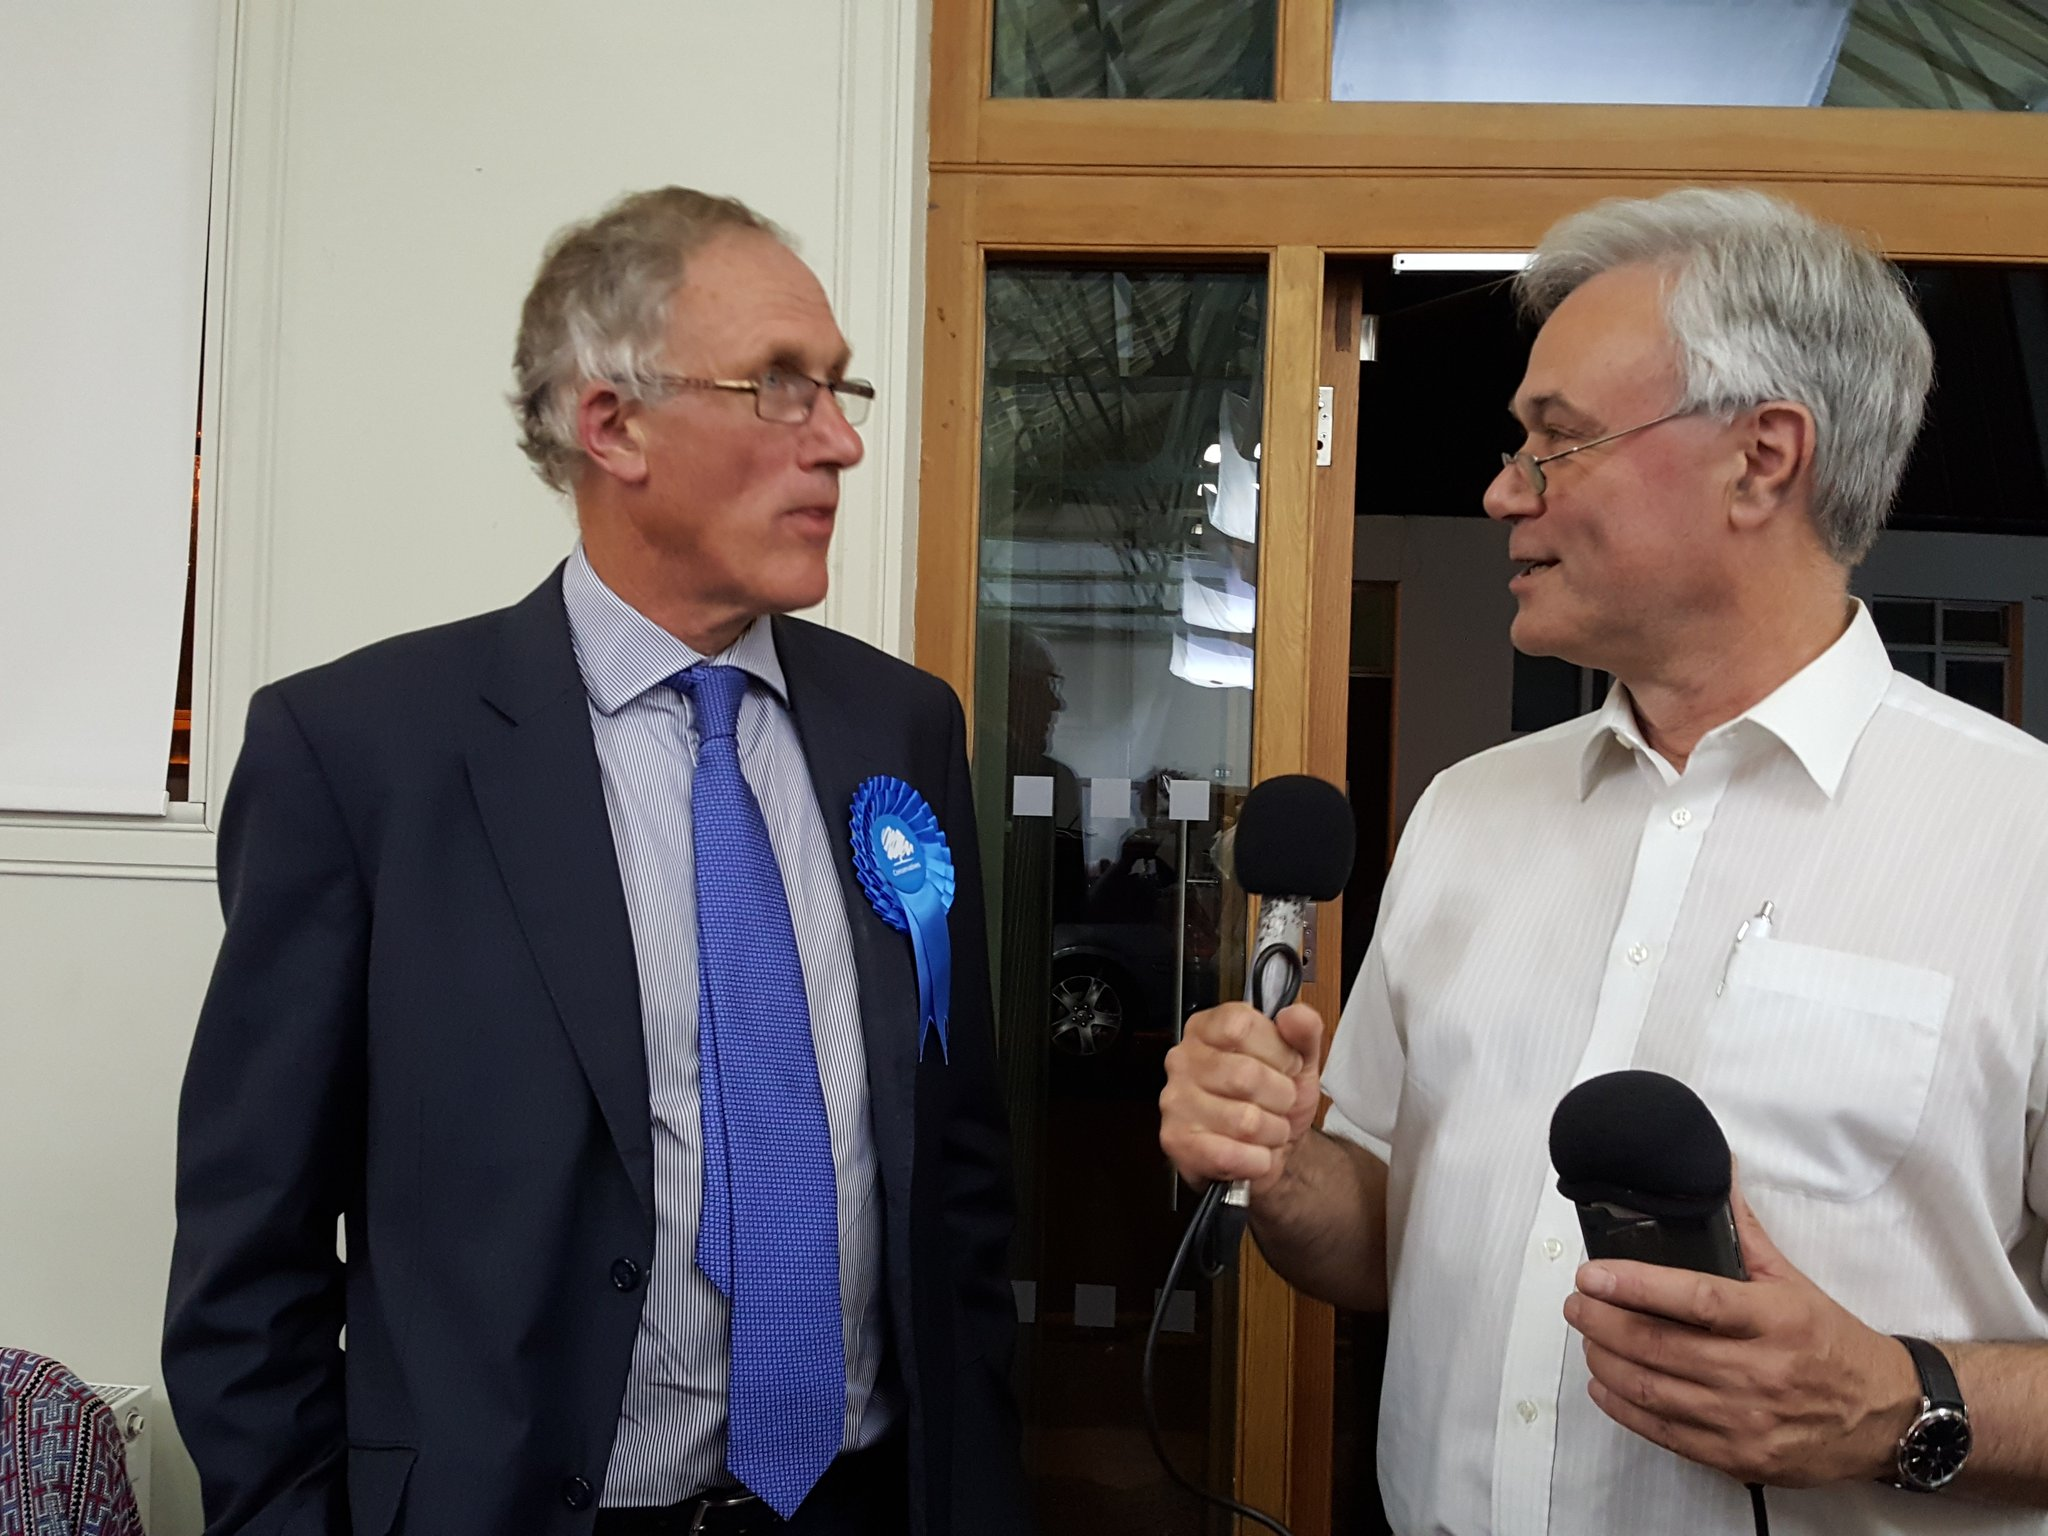 """In 30 yrs I've never made a prediction for an election,...high turnout good fr democracy"" @julian_brazier @CfJKent #KentGE2017 https://t.co/sr8pueARpo"